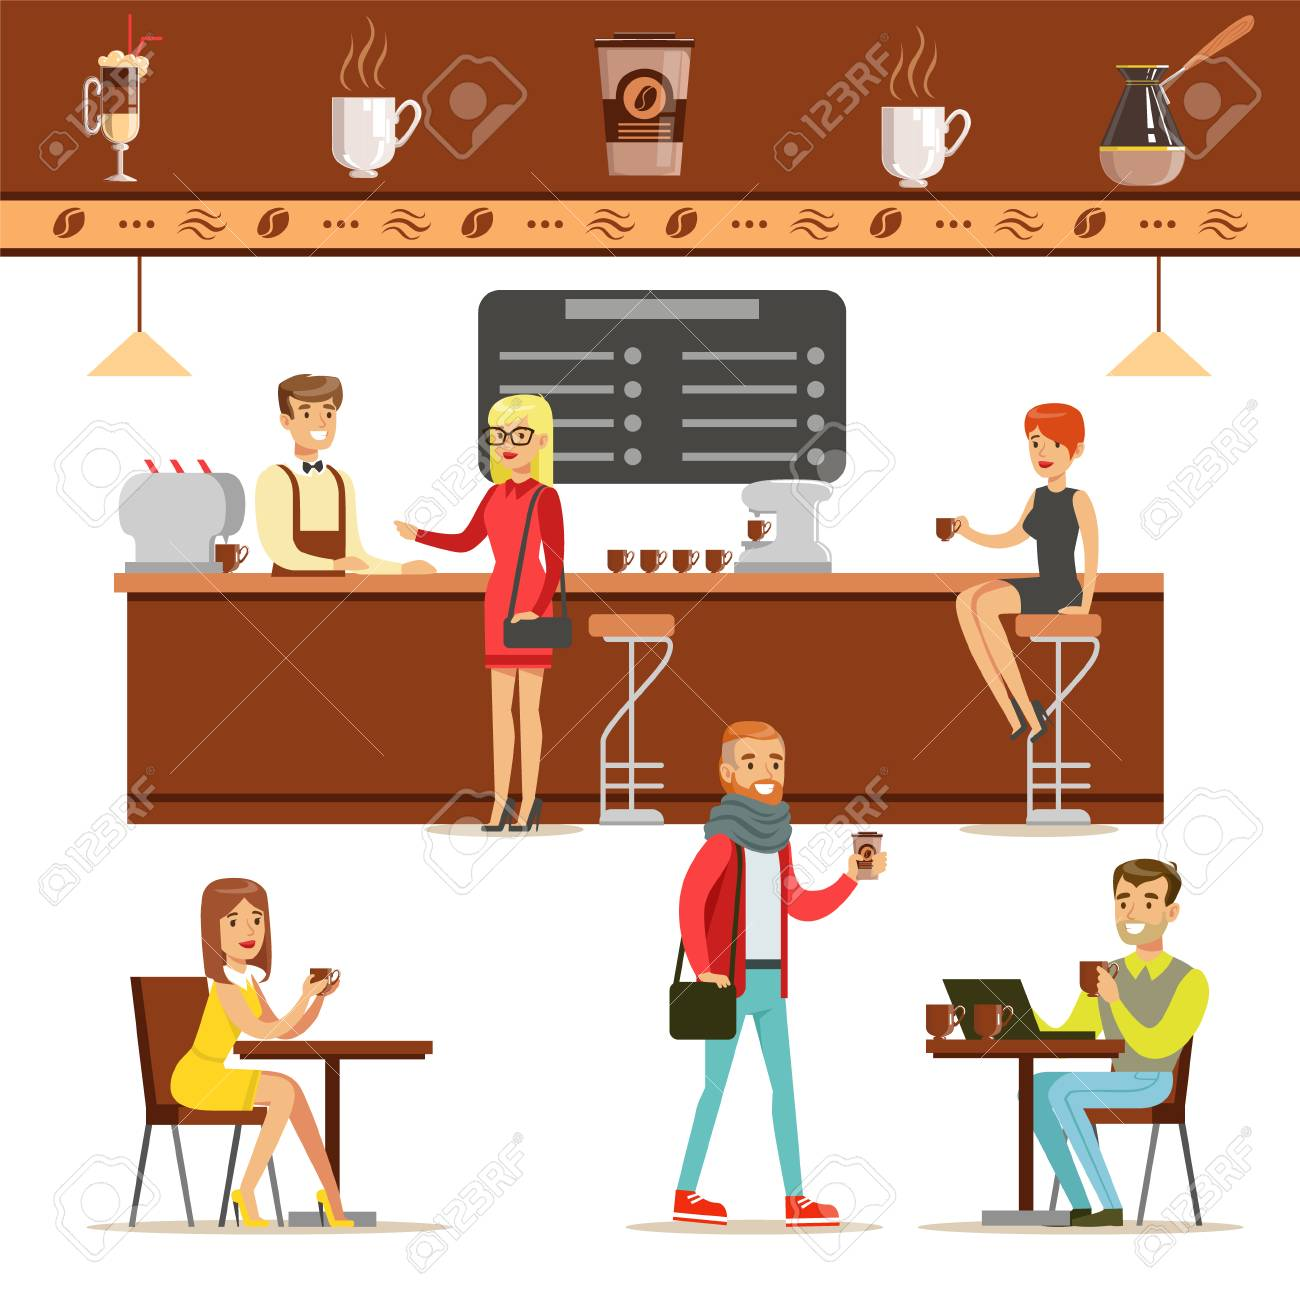 Interior Design And Happy Clients Of A Coffee Shop Set Of Illustrations. People Ordering And Enjoying Drinks And Food In A Cafe Colorful Simple Vector Drawings. - 128162337